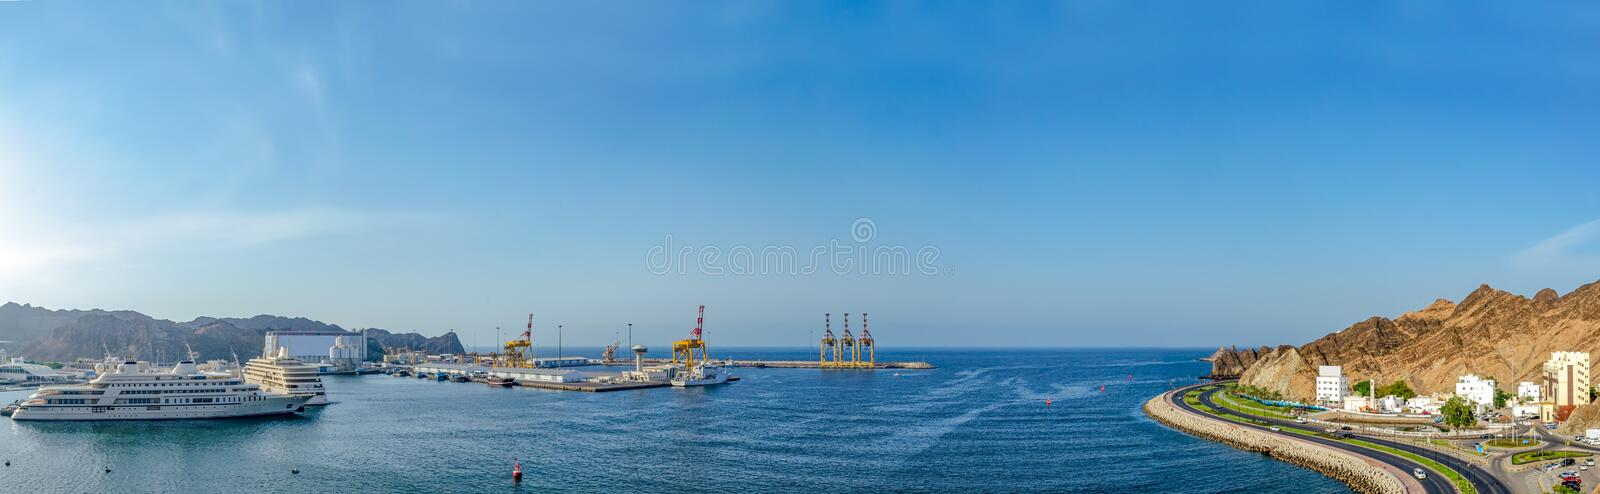 Panorama of Oman landscape royalty free stock images